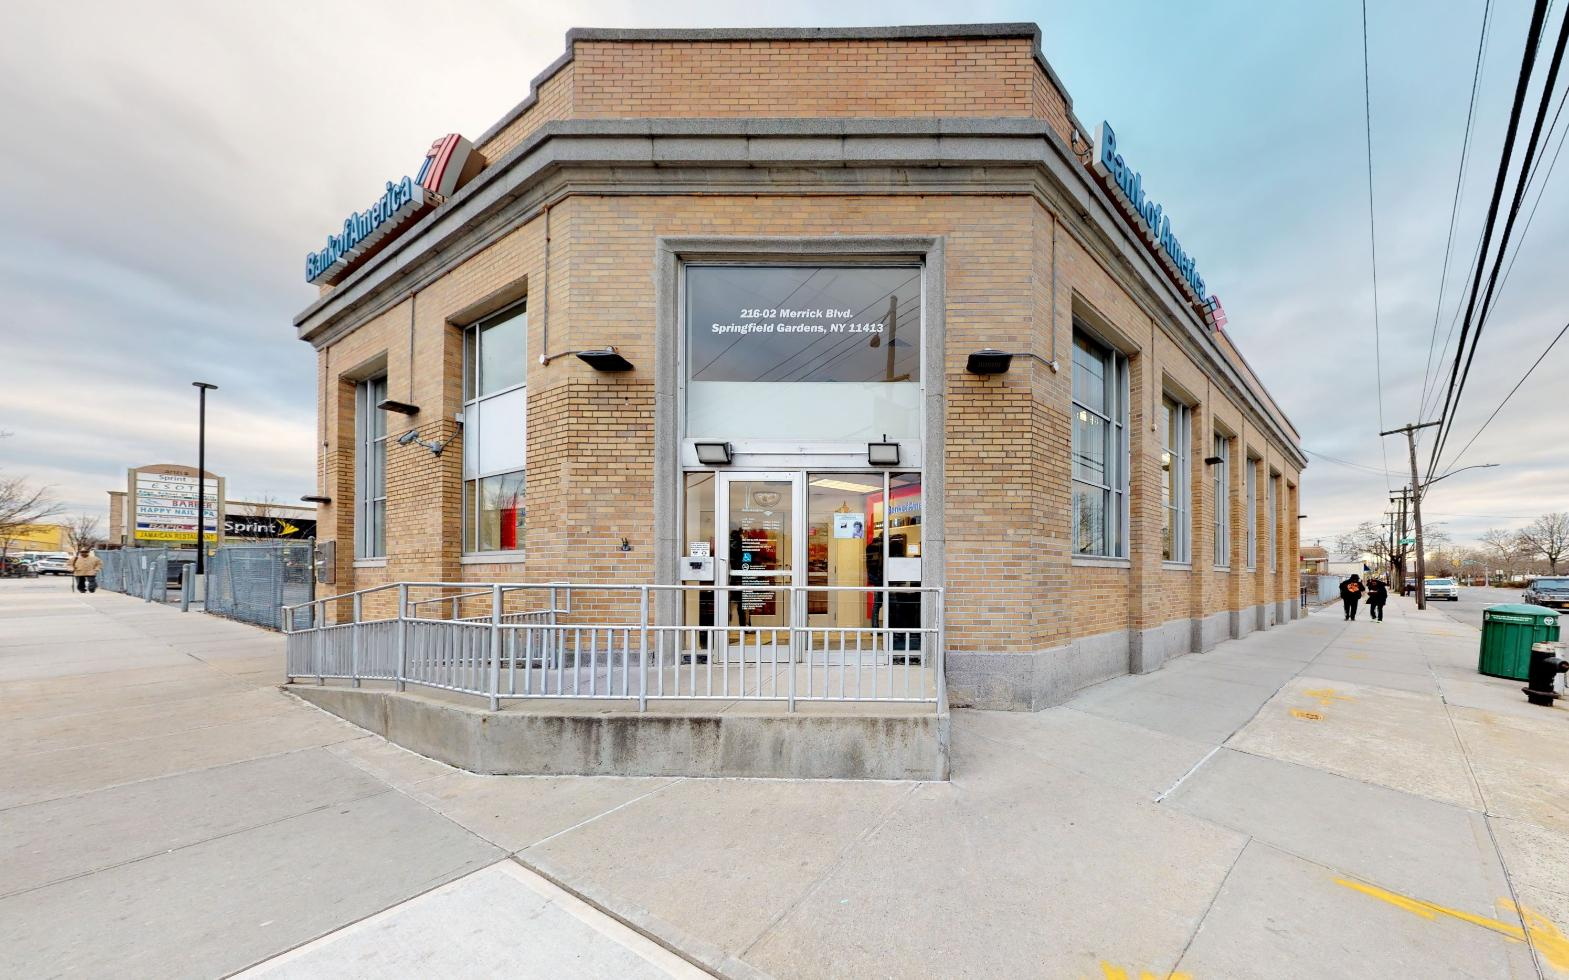 Bank of America financial center with walk-up ATM | 21602 Merrick Blvd, Springfield Gardens, NY 11413